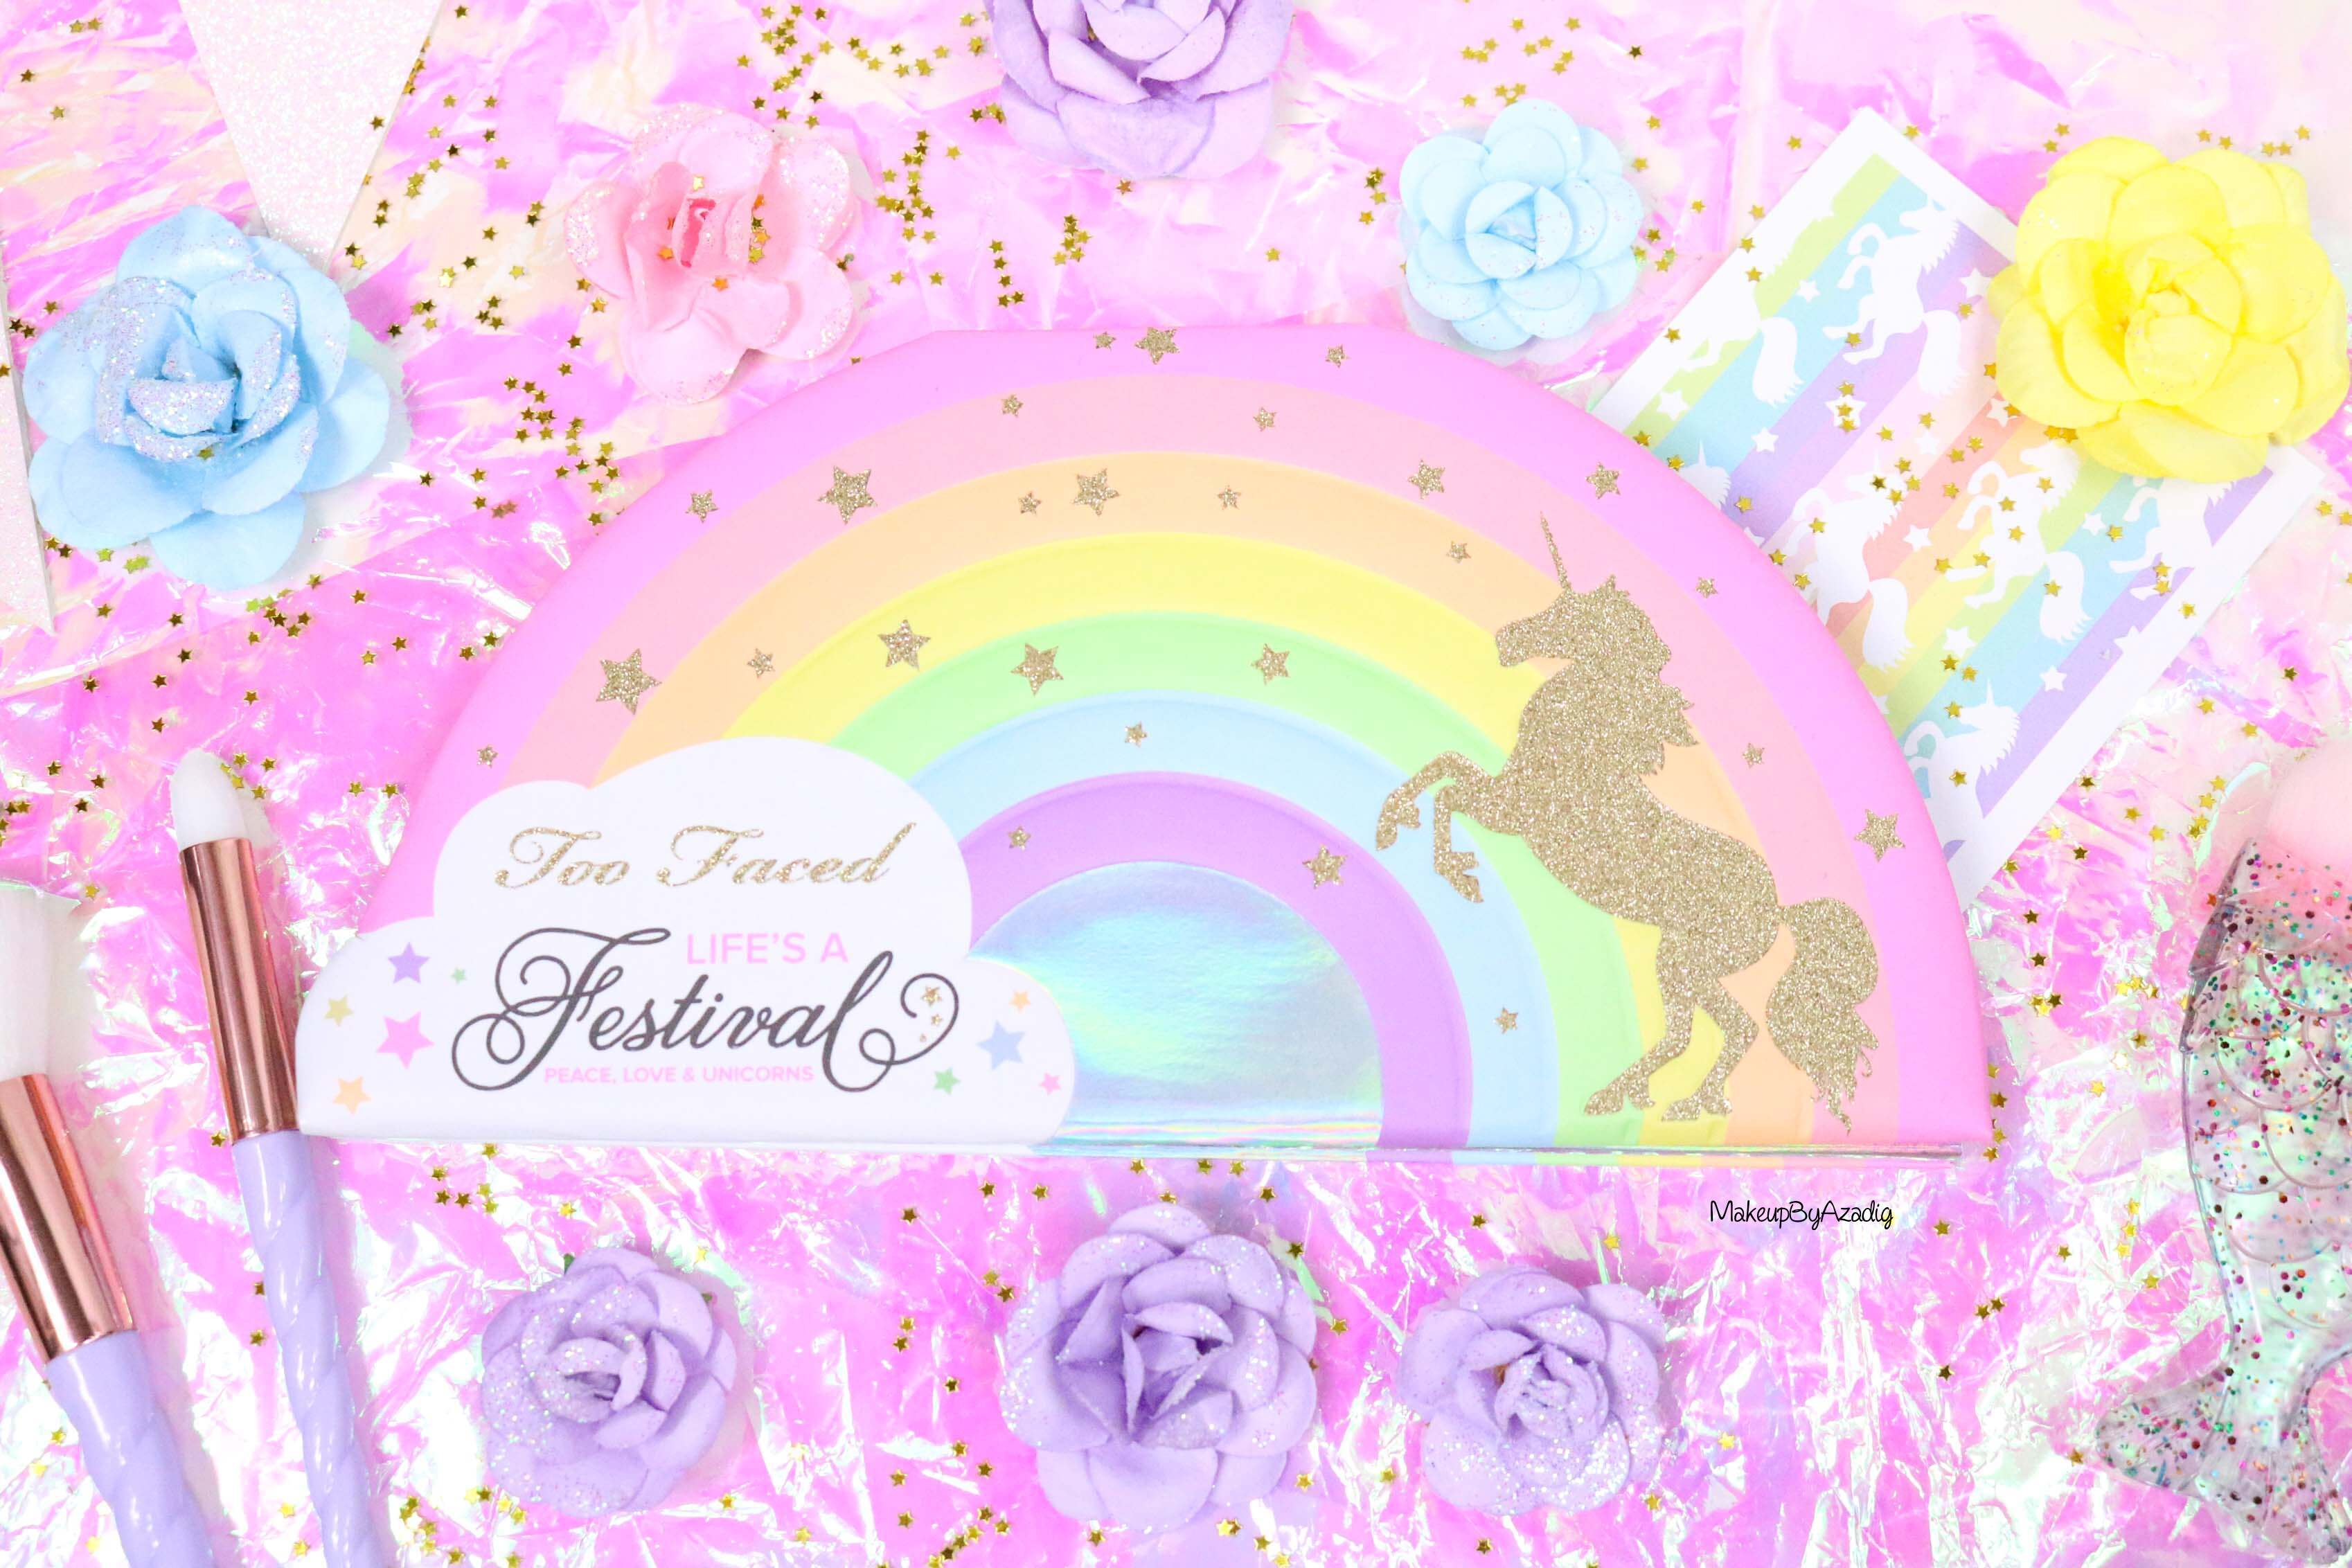 revue-palette-lifes-a-festival-too-faced-france-sephora-avis-prix-revue-makeupbyazadig-collection-licorne-unicorn-tears